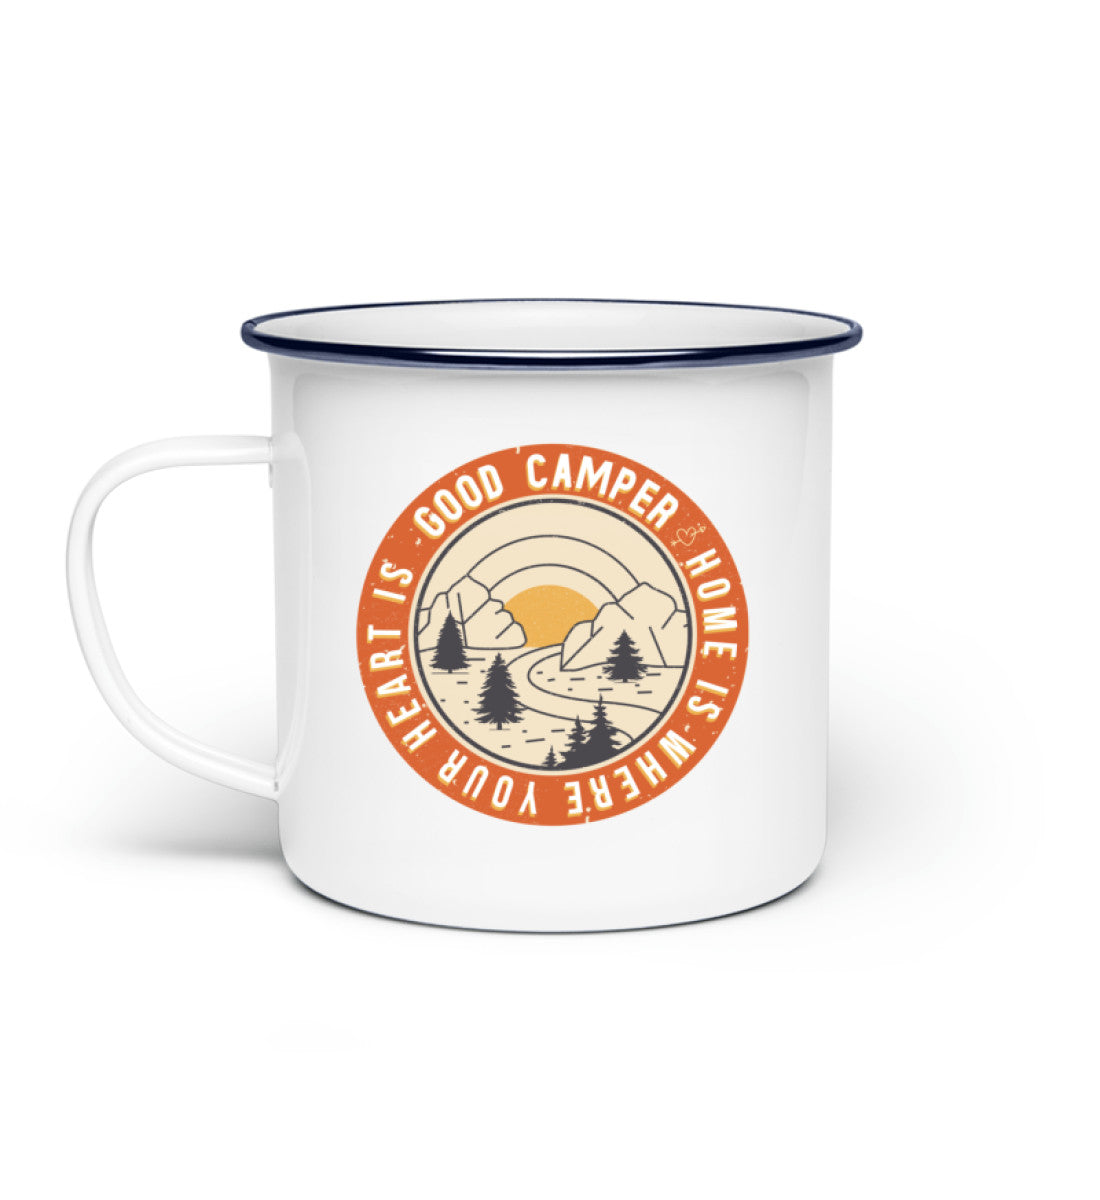 Good Camper Enamel Mug